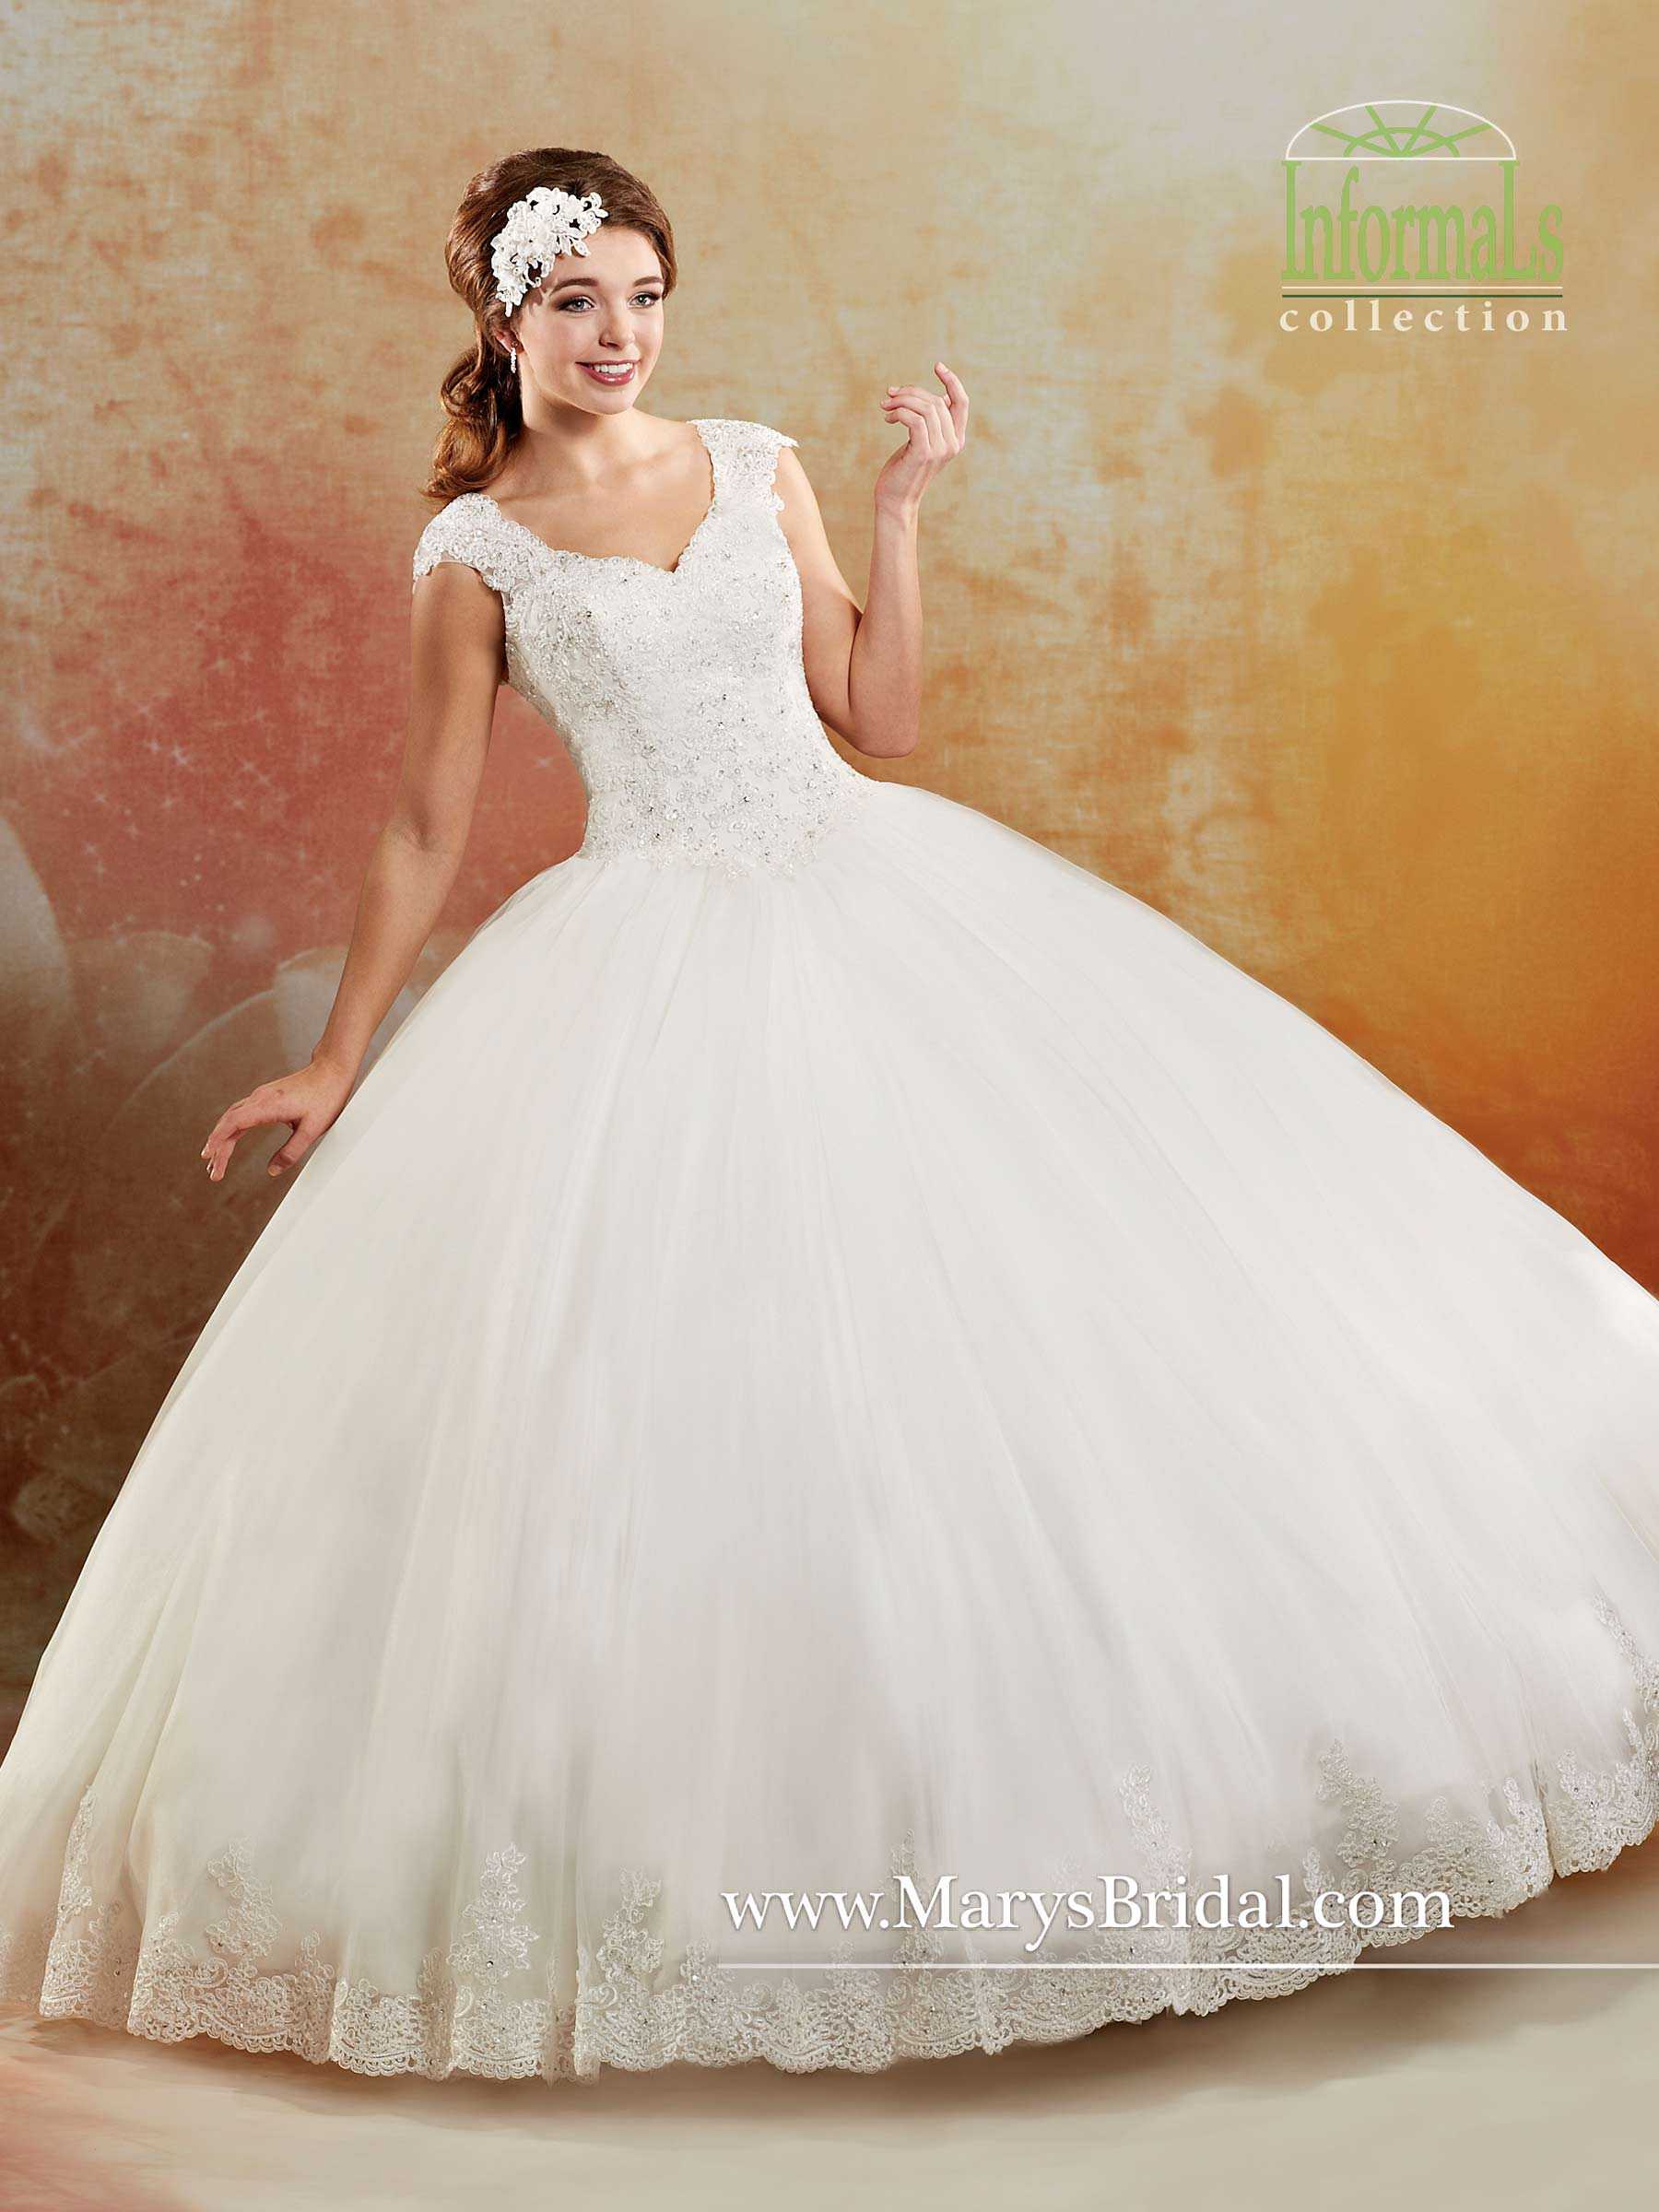 acea7c9e2fac1 Bridal Ball Gowns | Style - 2B790 in White Color